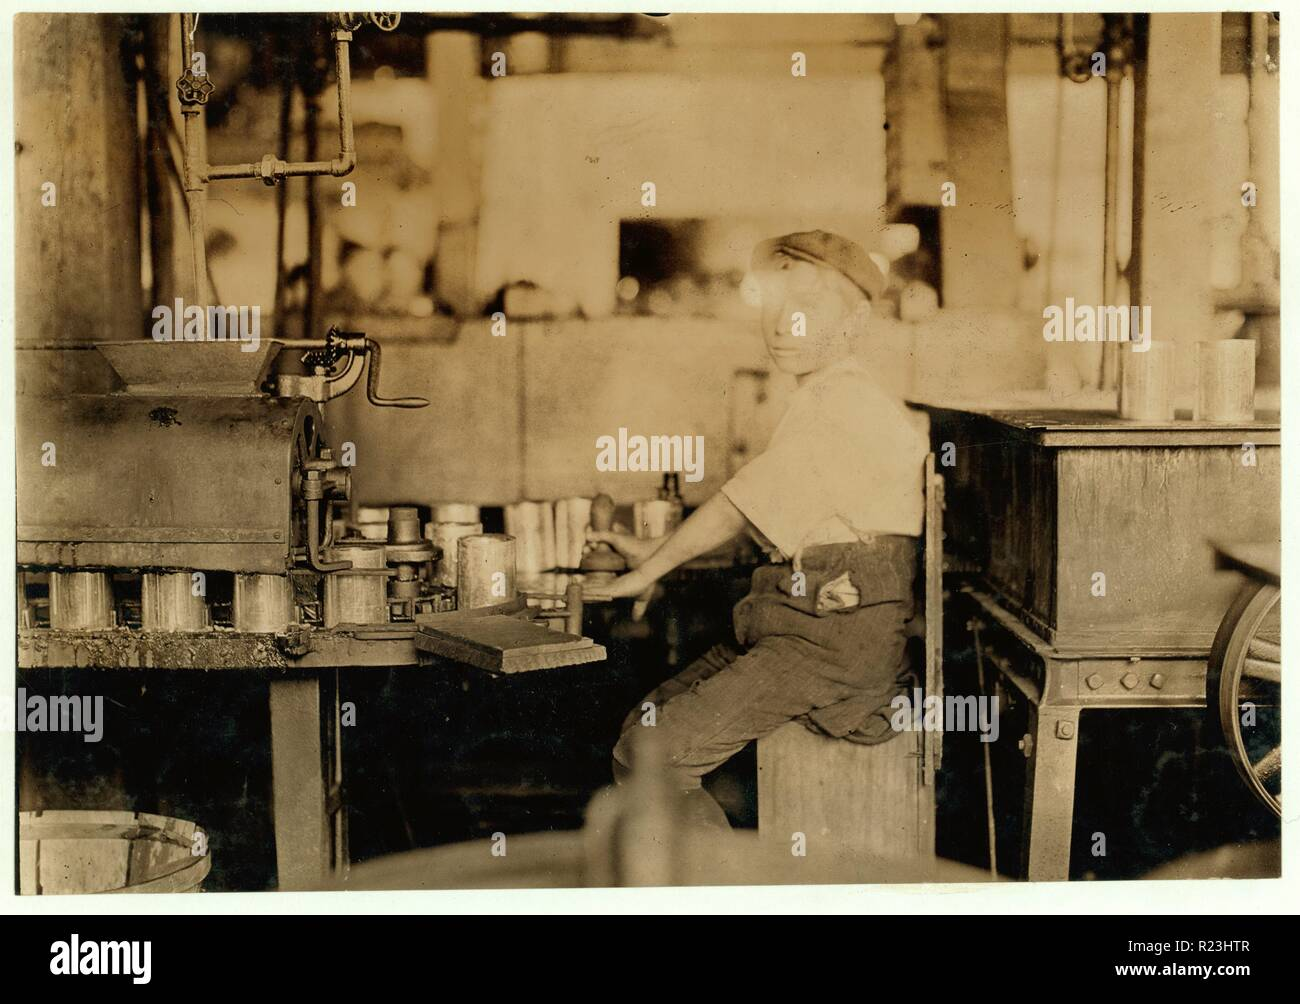 Dangerous Business. Boy working at canning machine with open gearing. J. S. Farrand Packing Co. July 7, 1909. Location: Baltimore, Maryland. 1909 - Stock Image